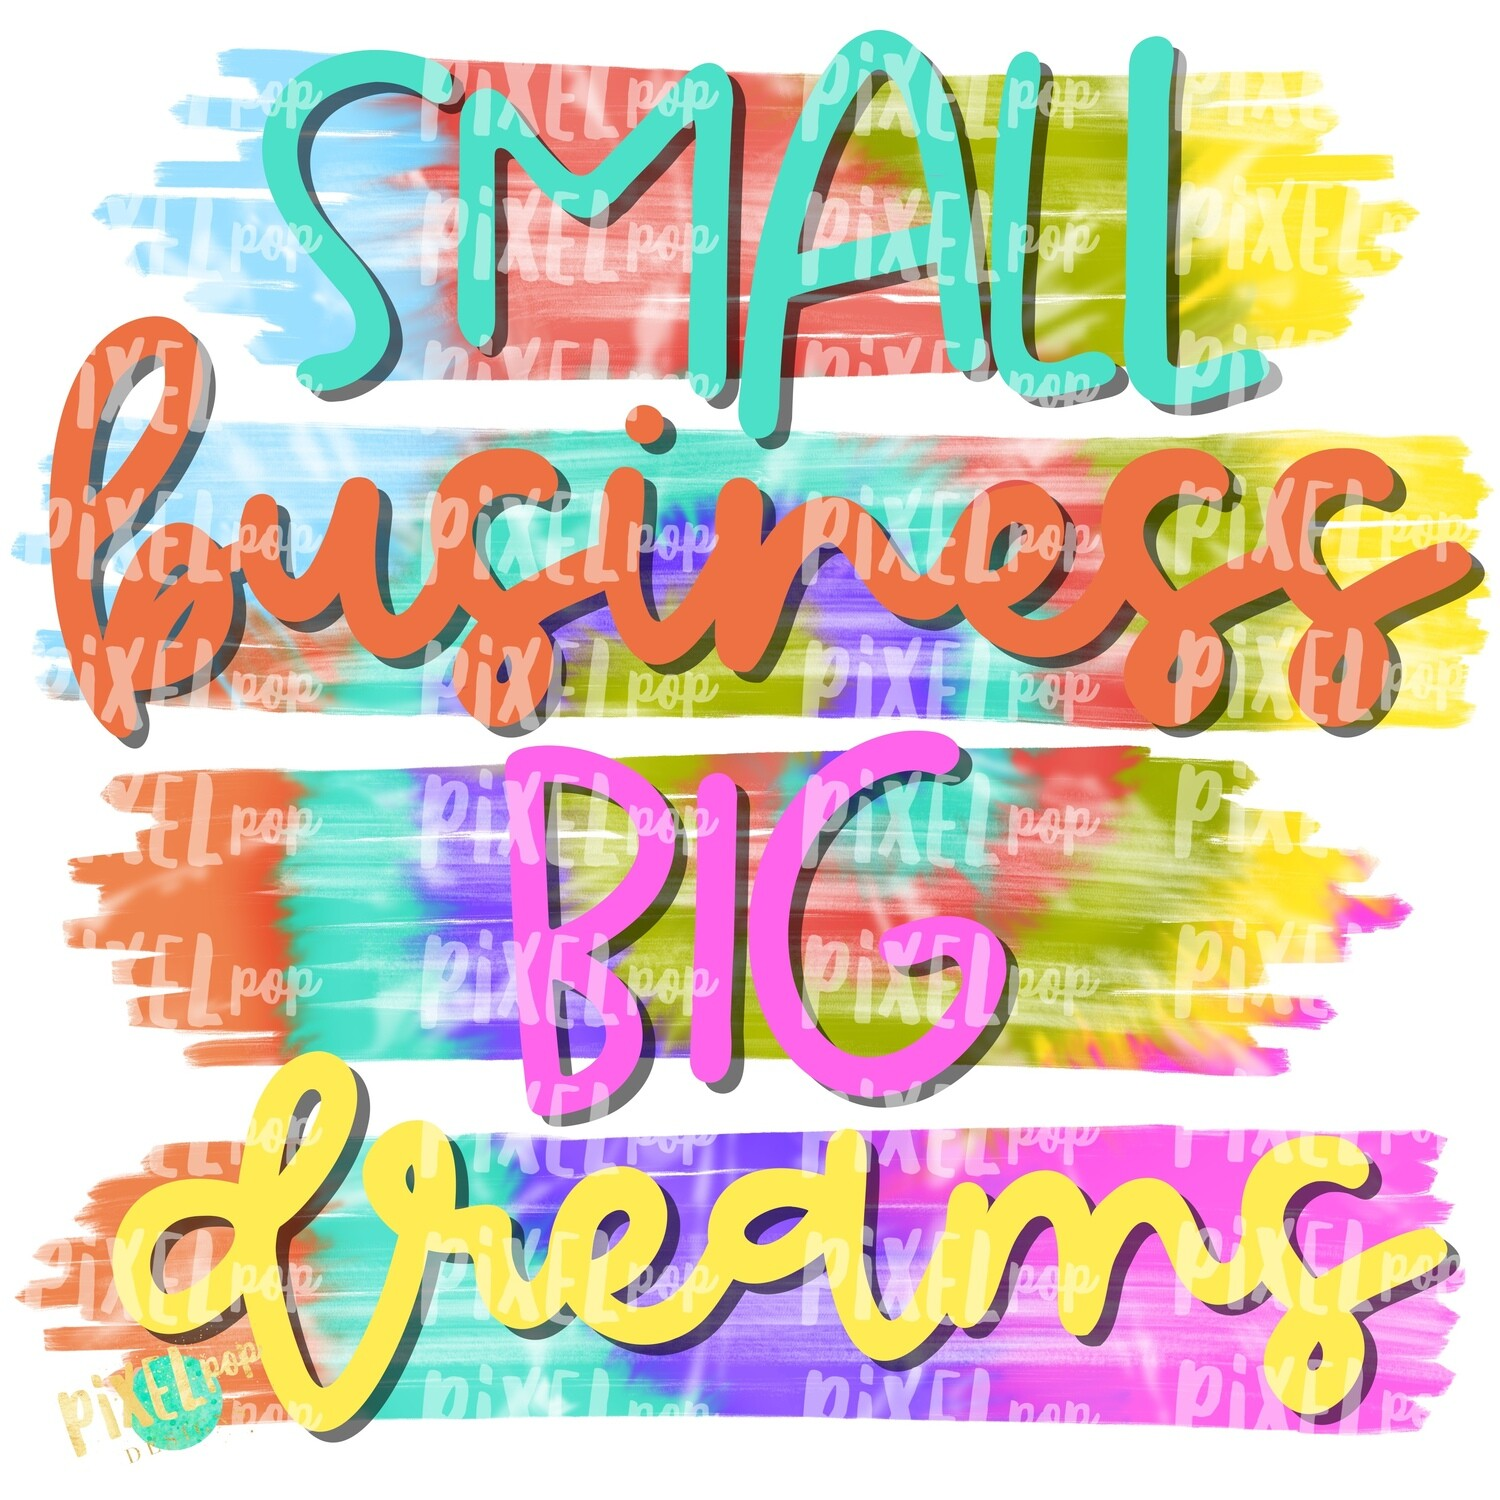 Small Business Big Dreams Tie Dye PNG   Business Clip Art   Small Business Marketing Image   Small Business Sticker Art   Business Art